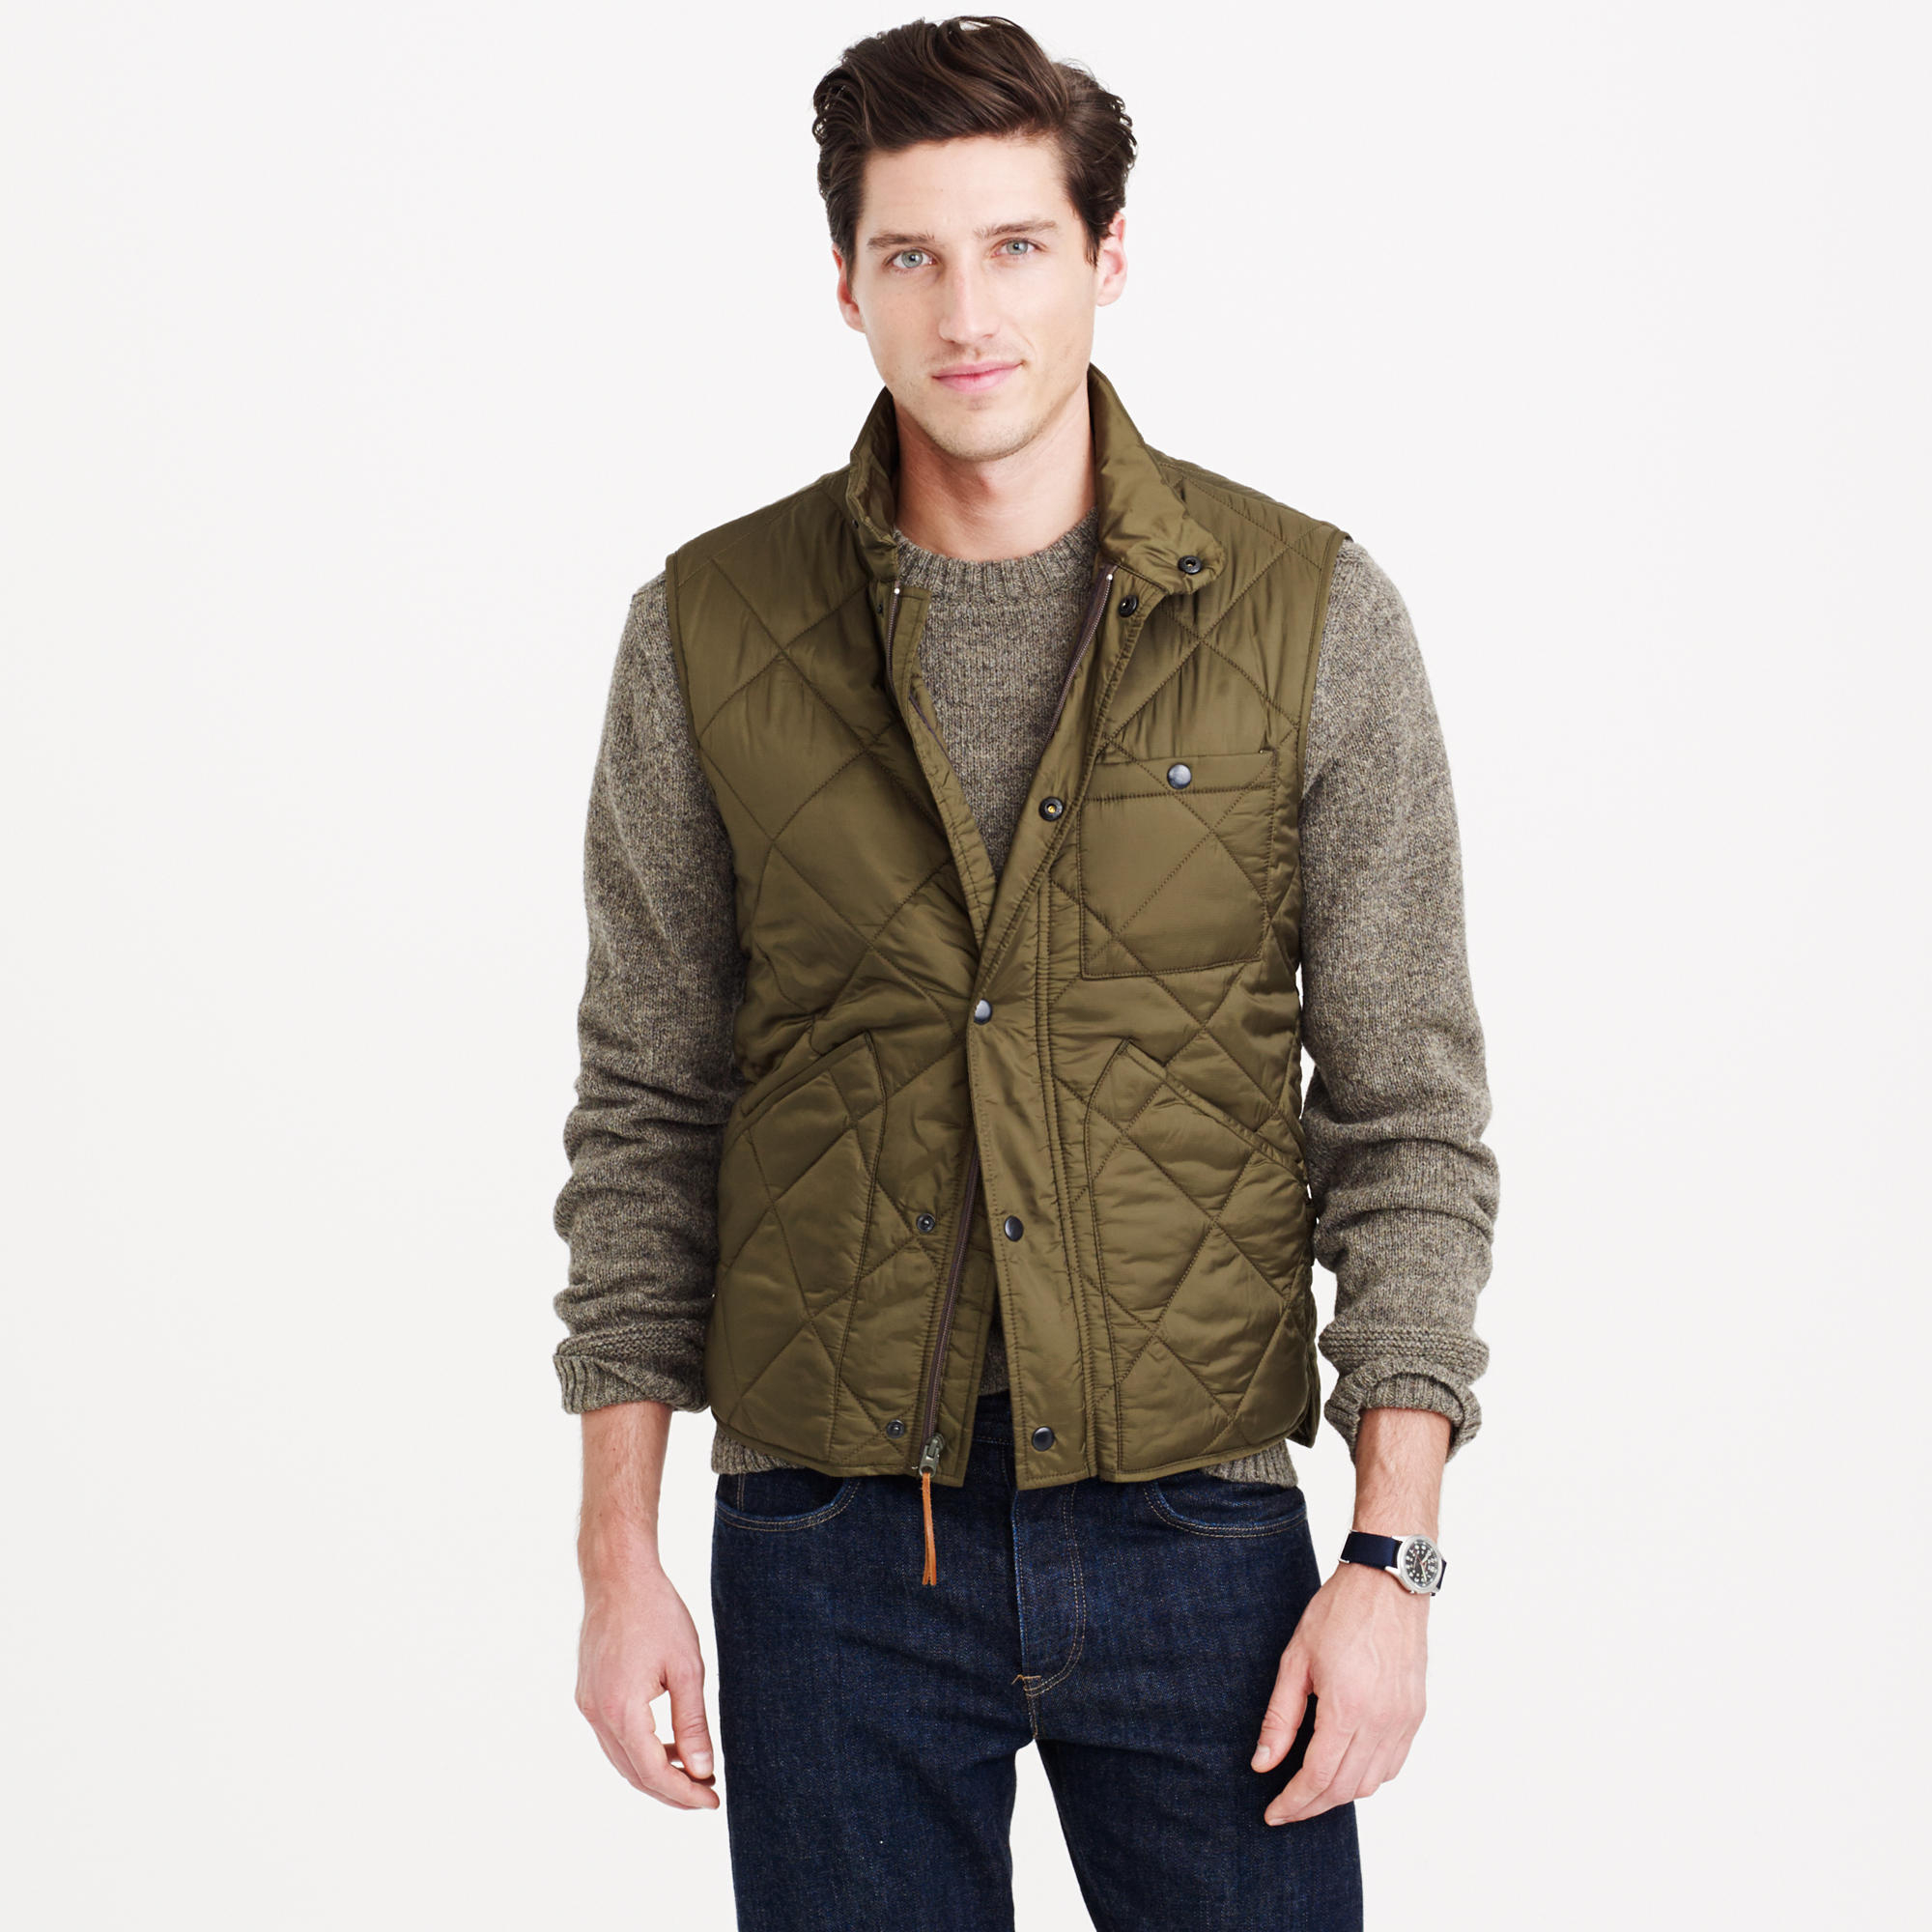 J Crew Nylon Sussex Quilted Vest In Green For Men Lyst